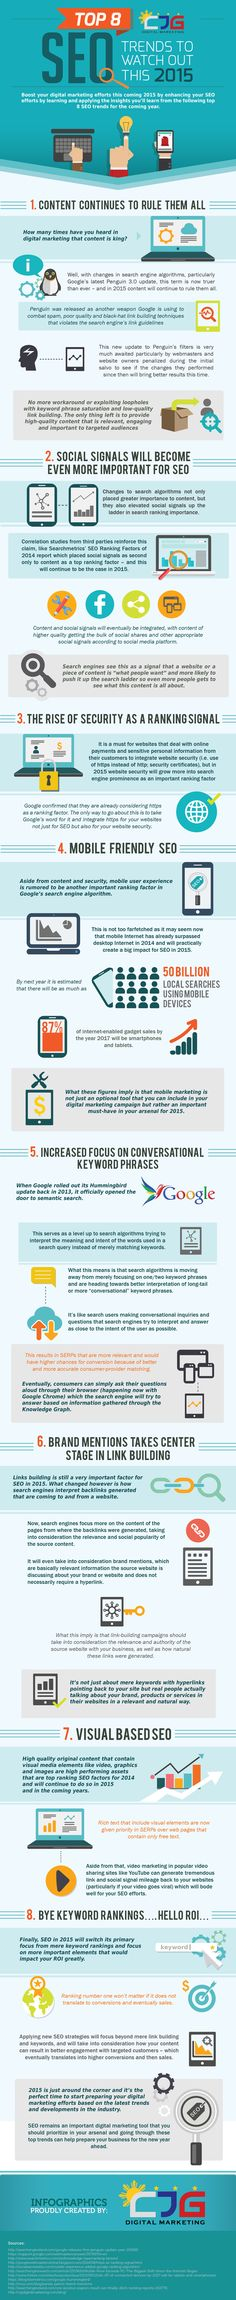 #SEO #trends for 2015 #infographic